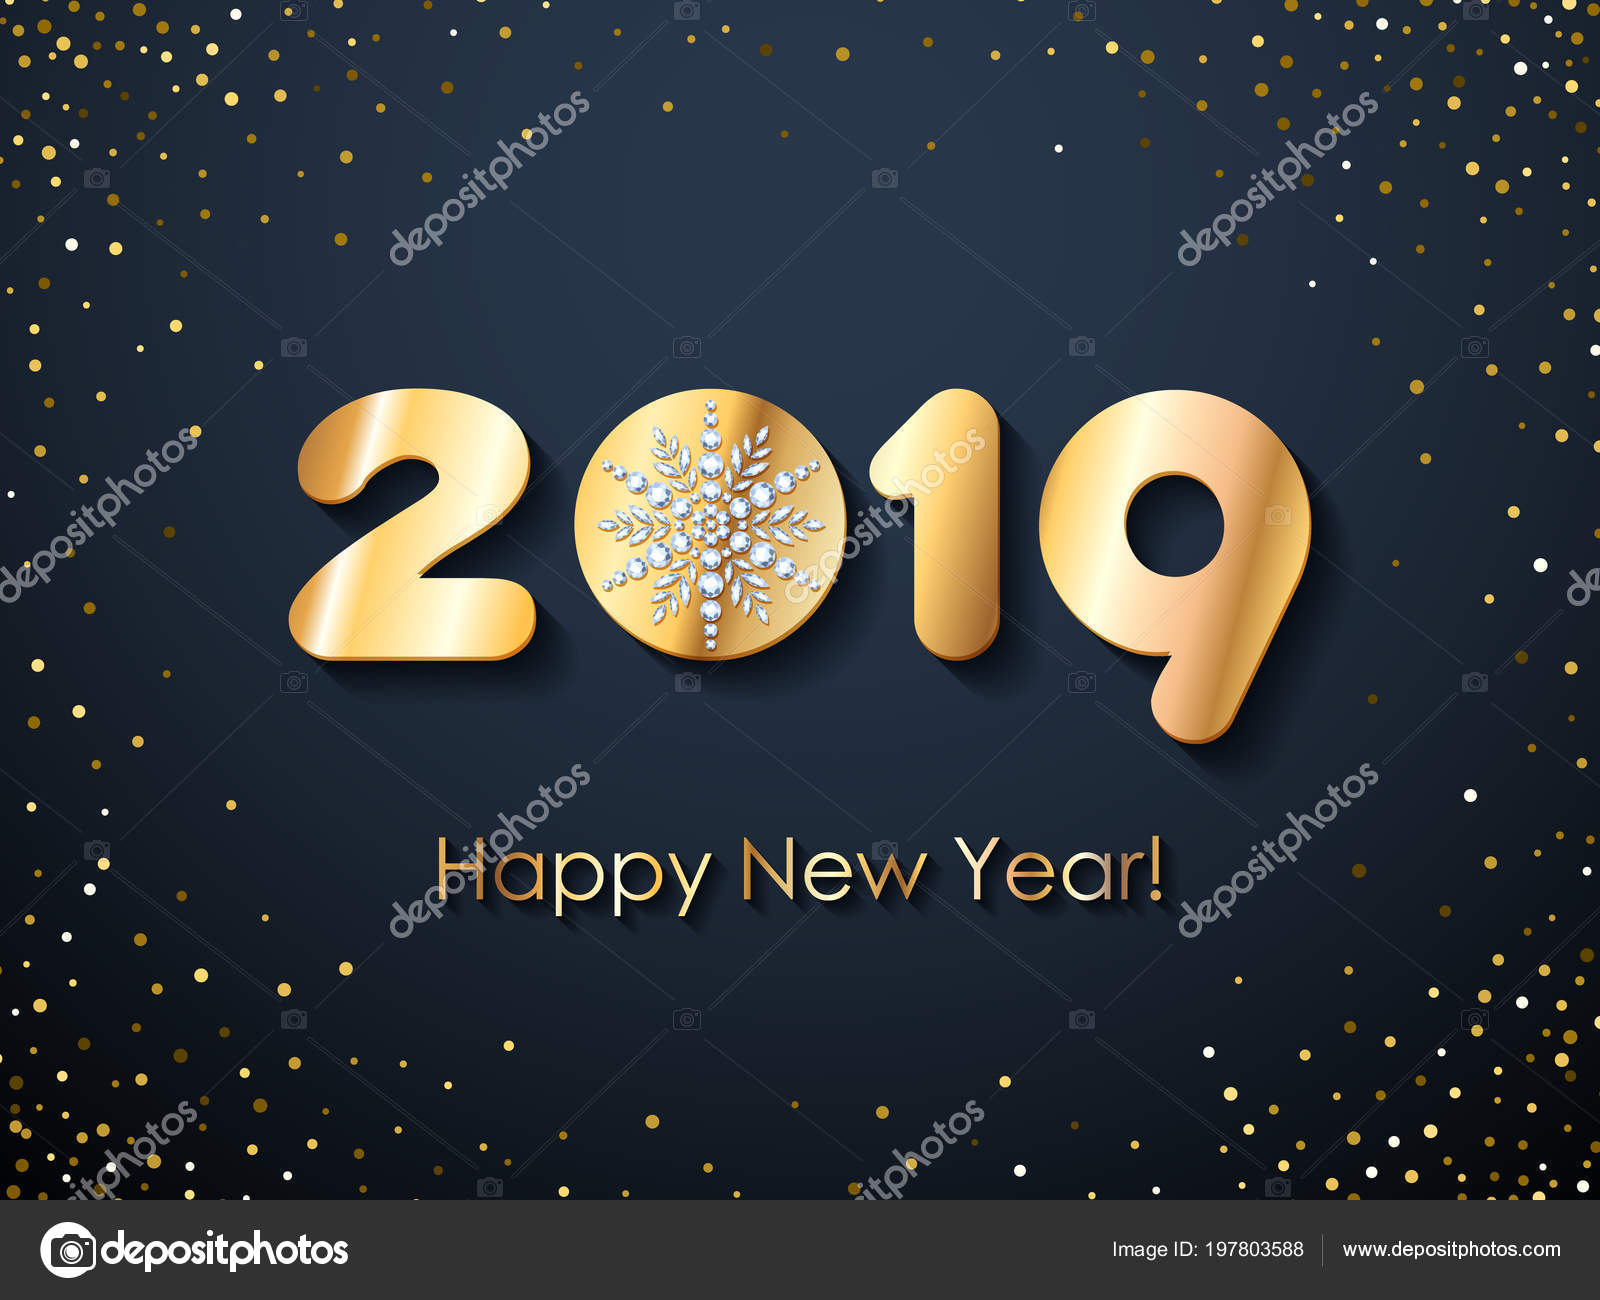 depositphotos_197803588 stock illustration 2019 happy new year backgroundjpg